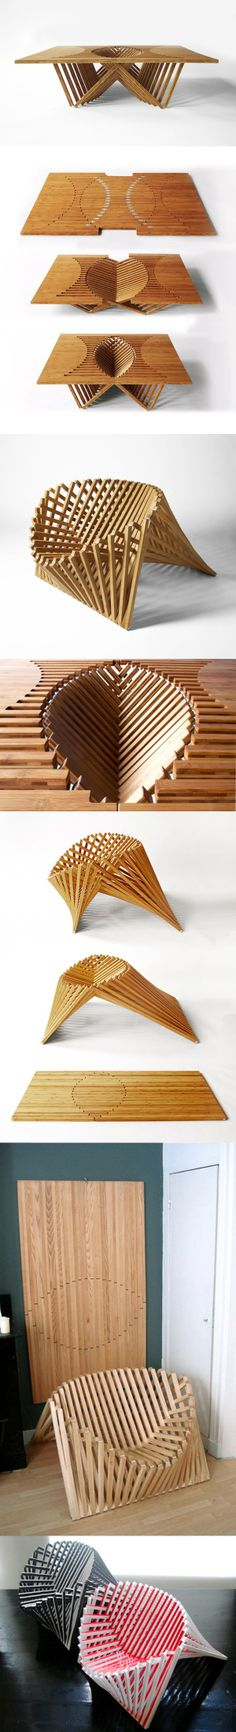 The Rising Table and Chair. Shut up and take my money!